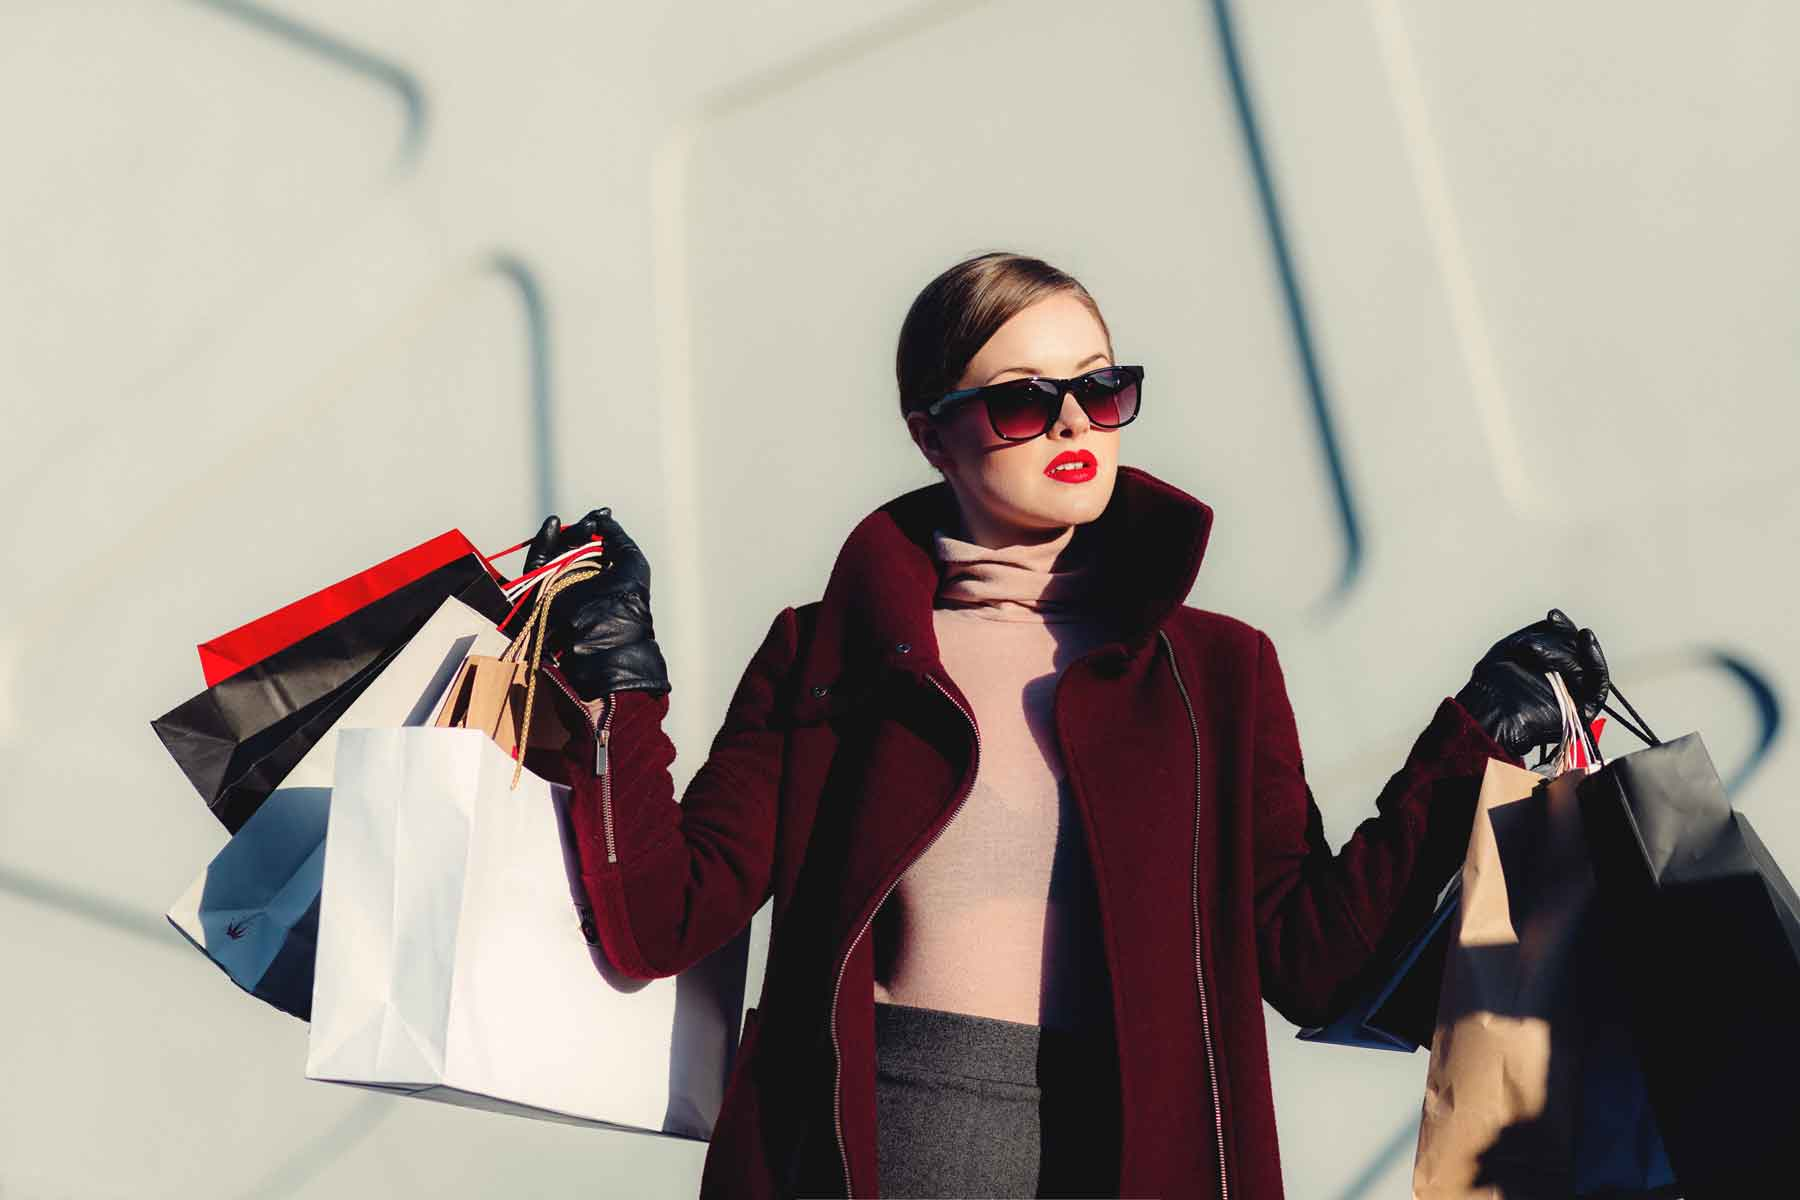 Woman with shopping bags wearing sunglasses